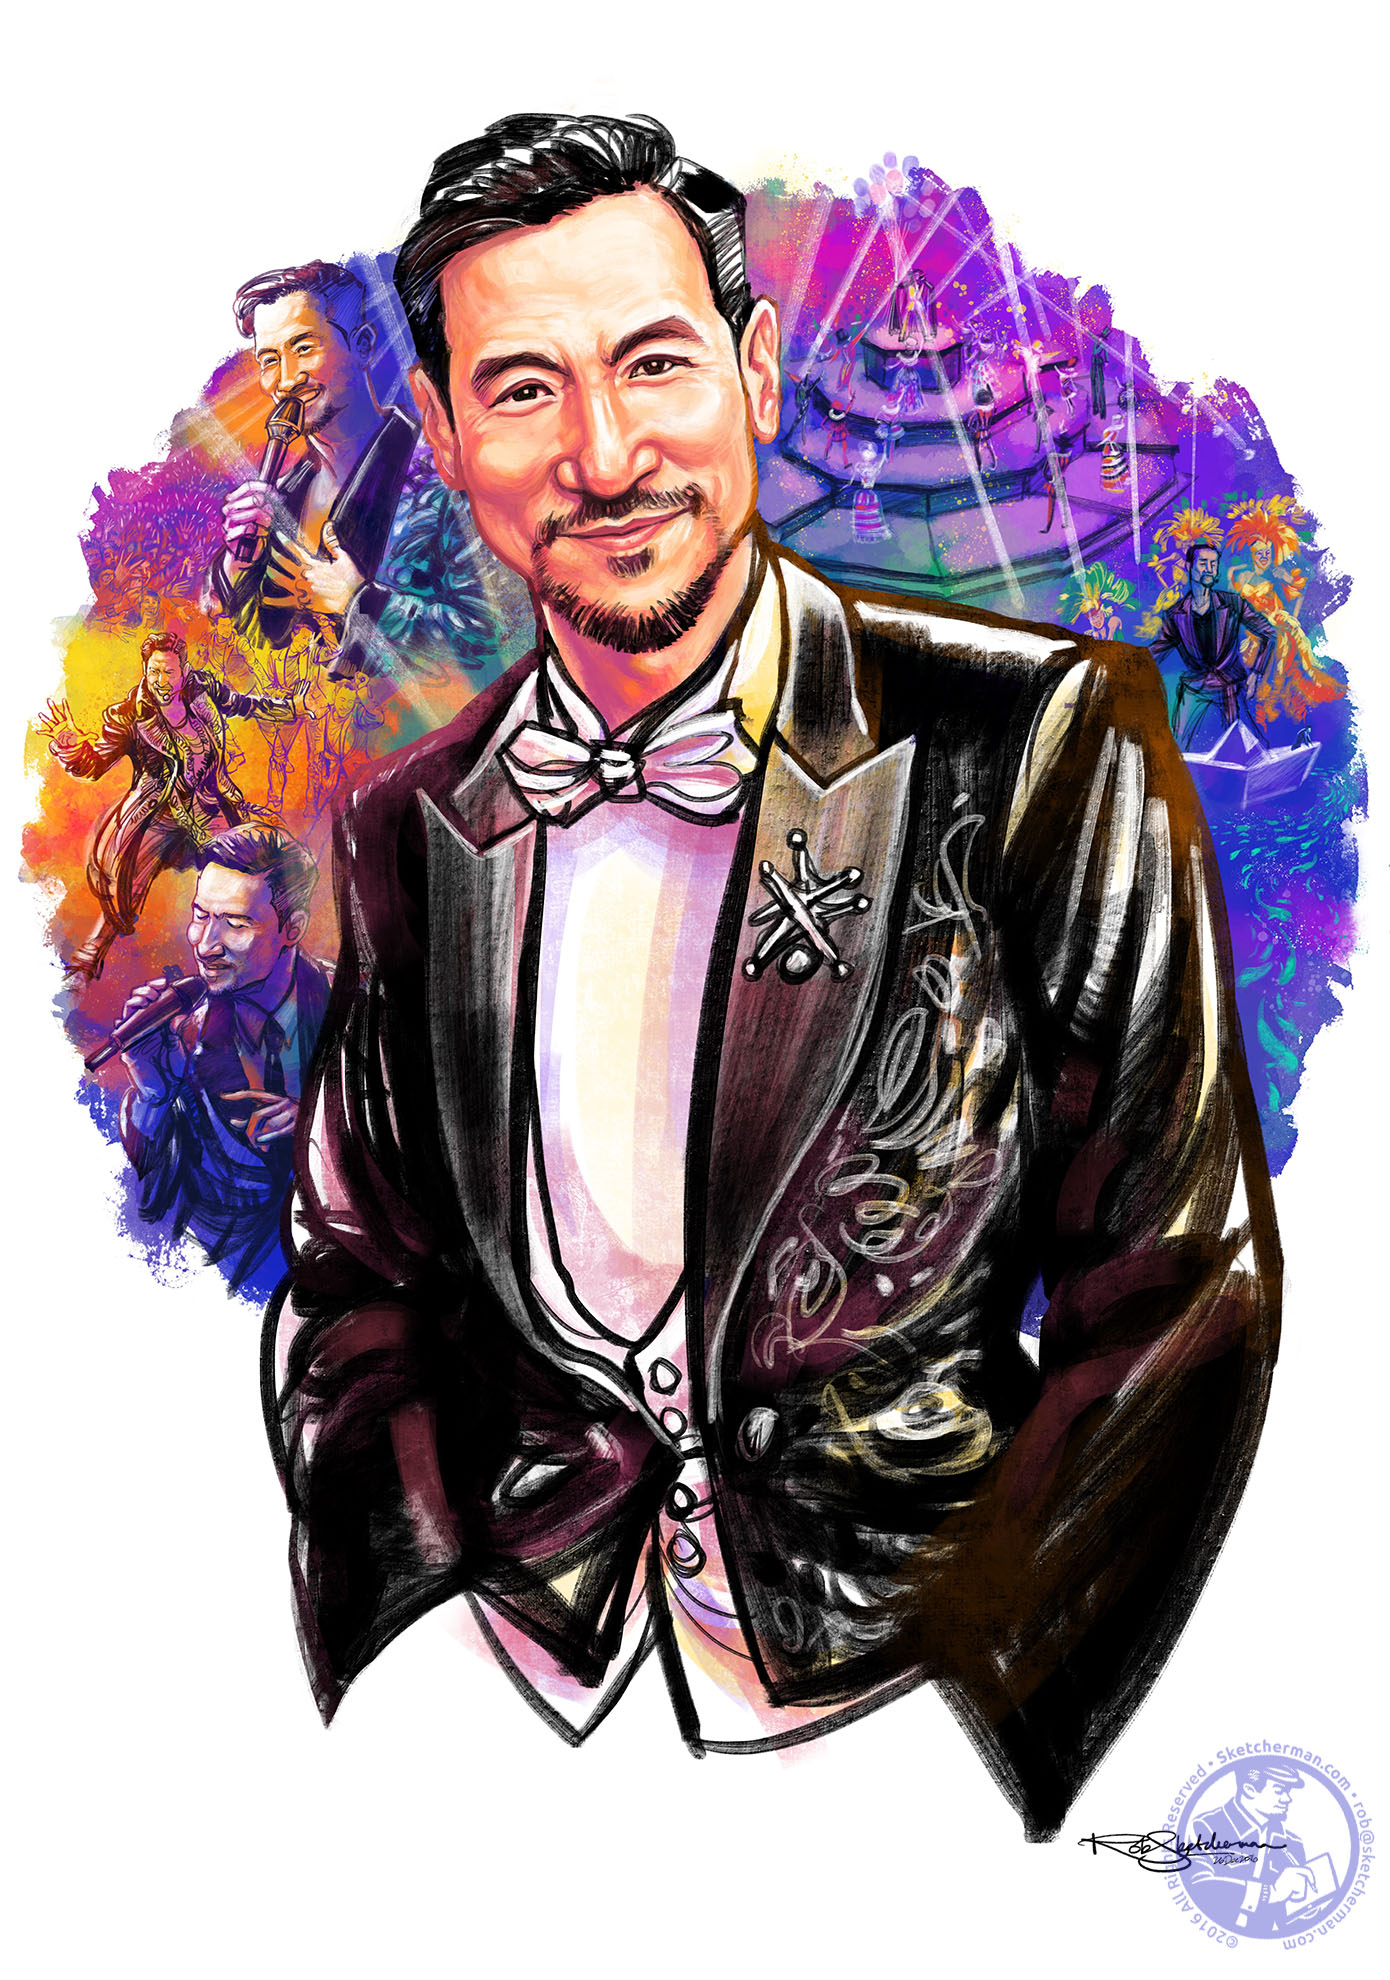 At 55, Jacky Cheung is a consummate performer who is older, wiser, more suave,  way  fitter and with a voice that is far more mesmerizing than men half his age could ever hope for.